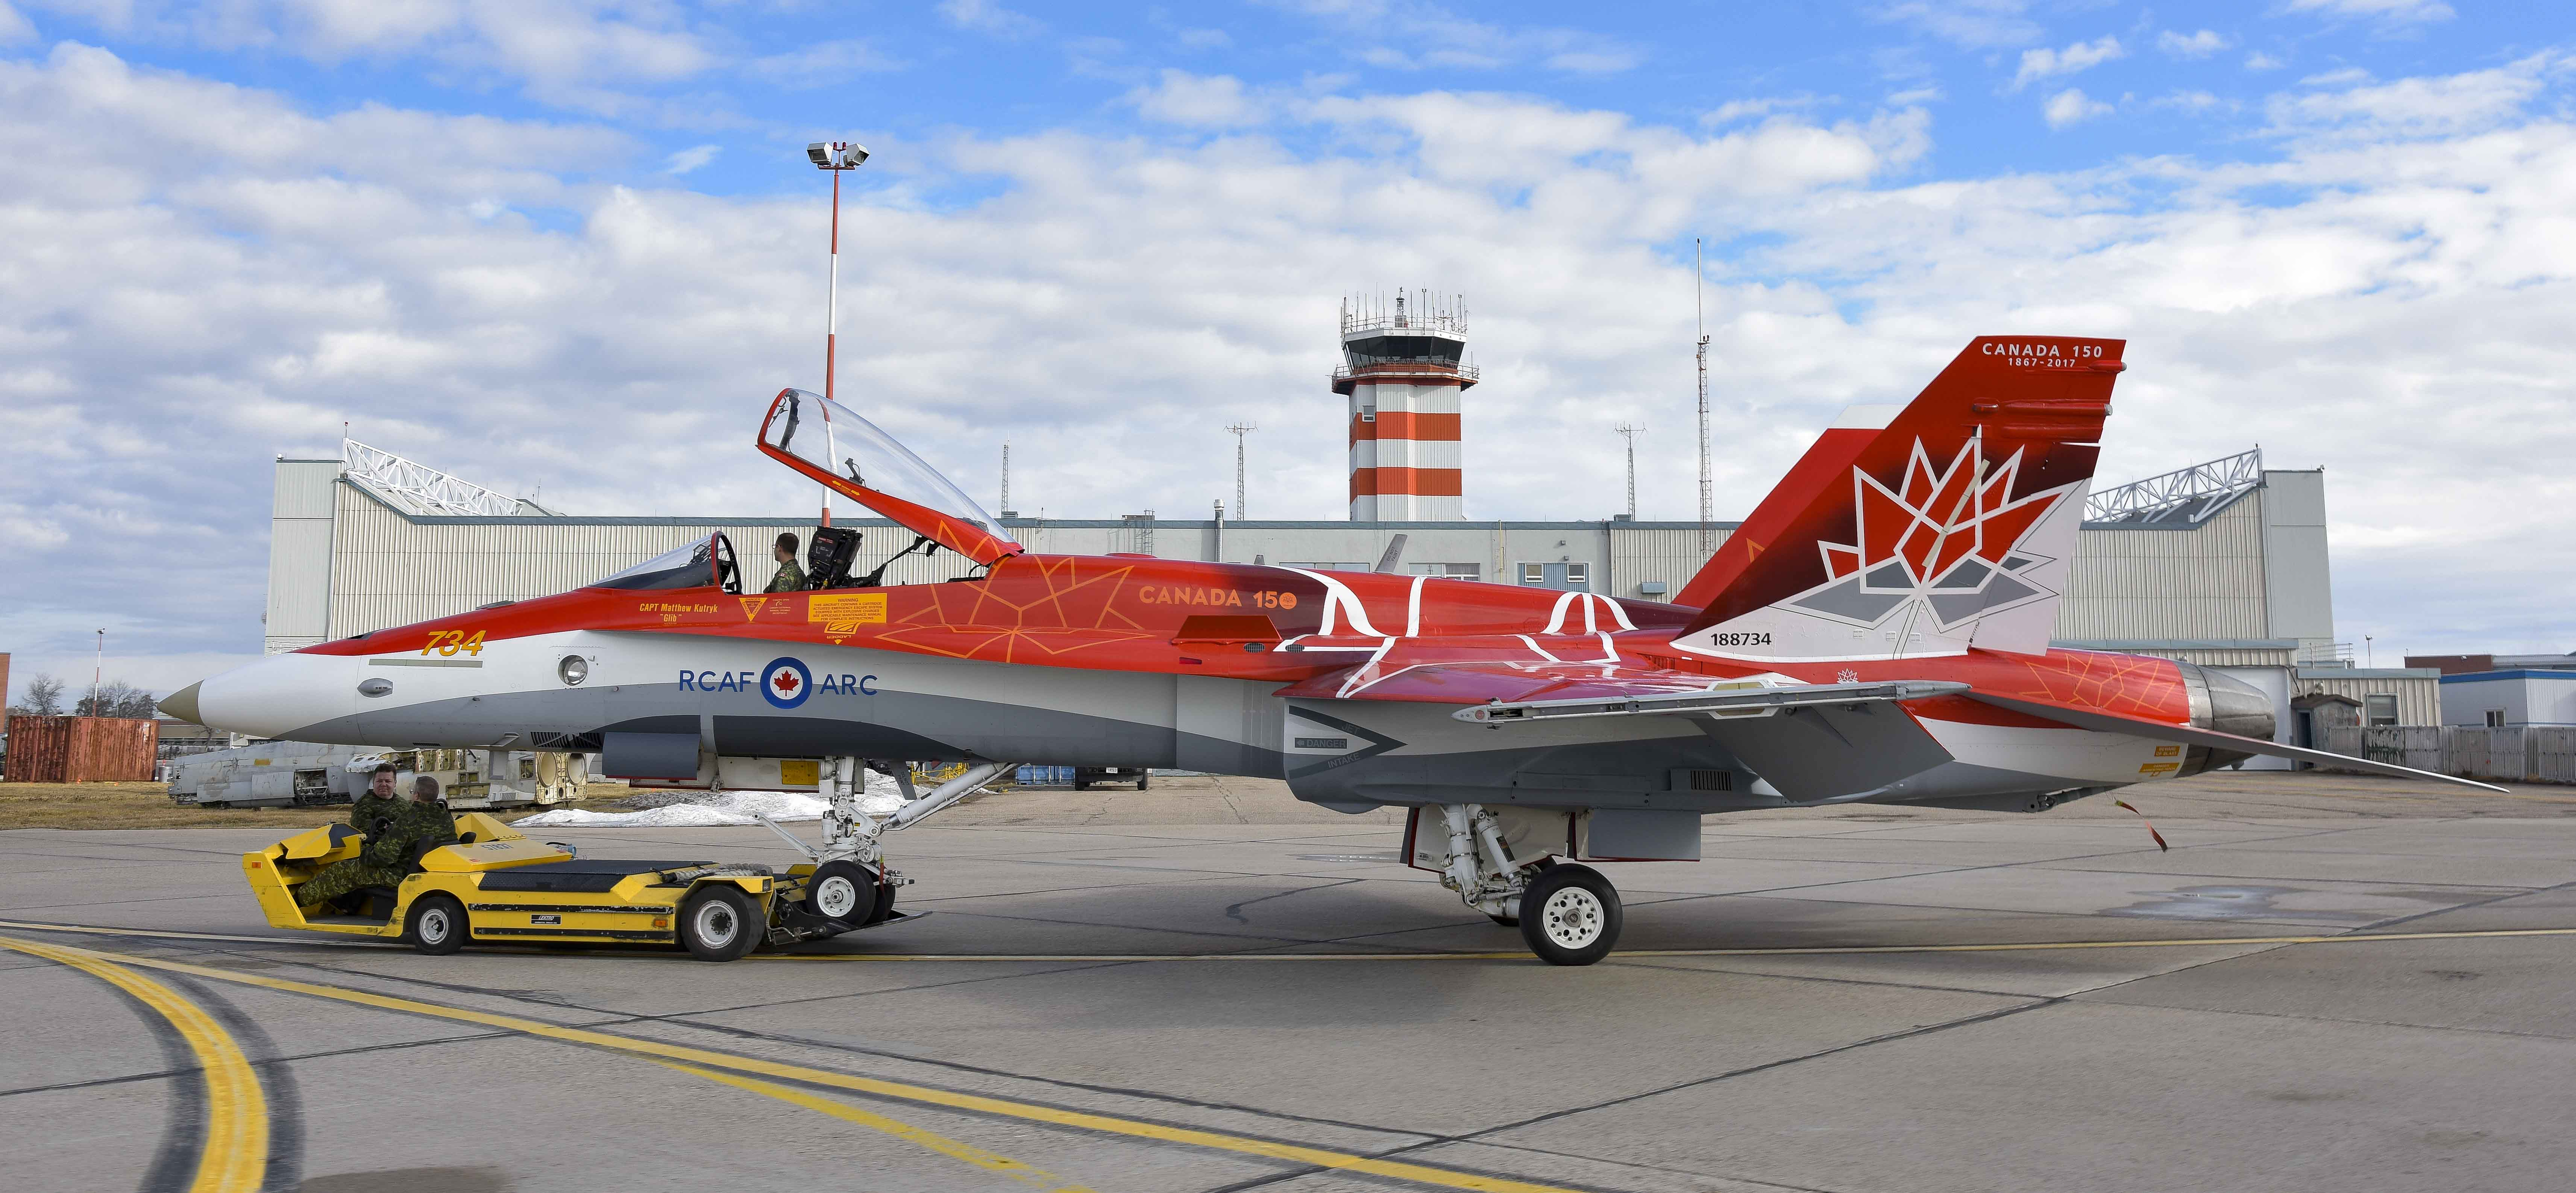 The 2017 Demonstration CF-18 Hornet aircraft is marshalled into position at 4 Wing Cold Lake, Alberta. The Demo Hornet's 2017 paint scheme celebrates the 150th anniversary of Canadian Confederation; the aircraft will be piloted by Captain Matthew Kutryk. PHOTO: Corporal Bryan Carter, CK05-2017-0264-001